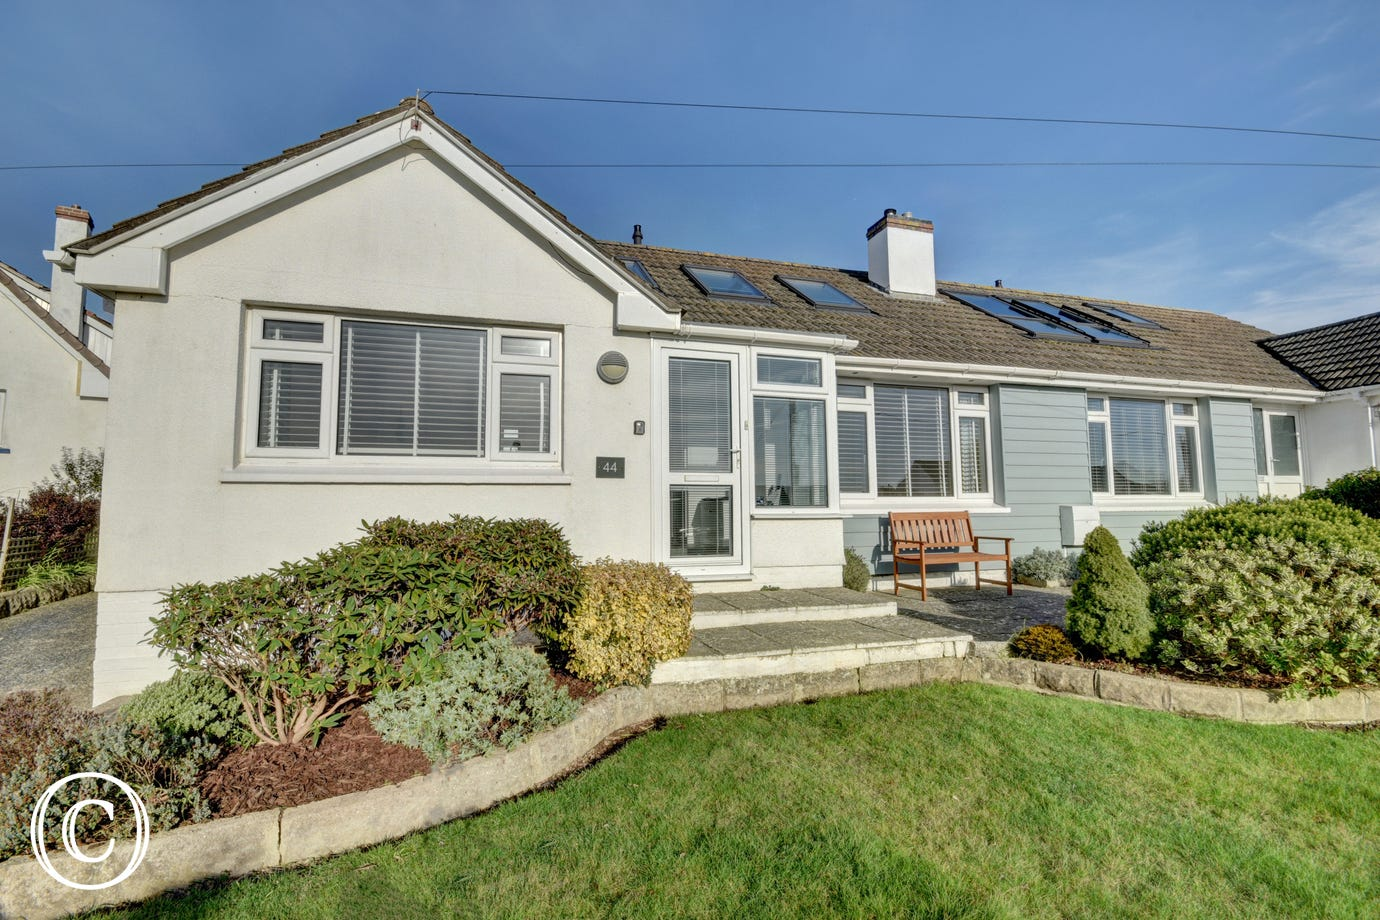 This deceptively spacious property is situated in a quiet residential area of Braunton